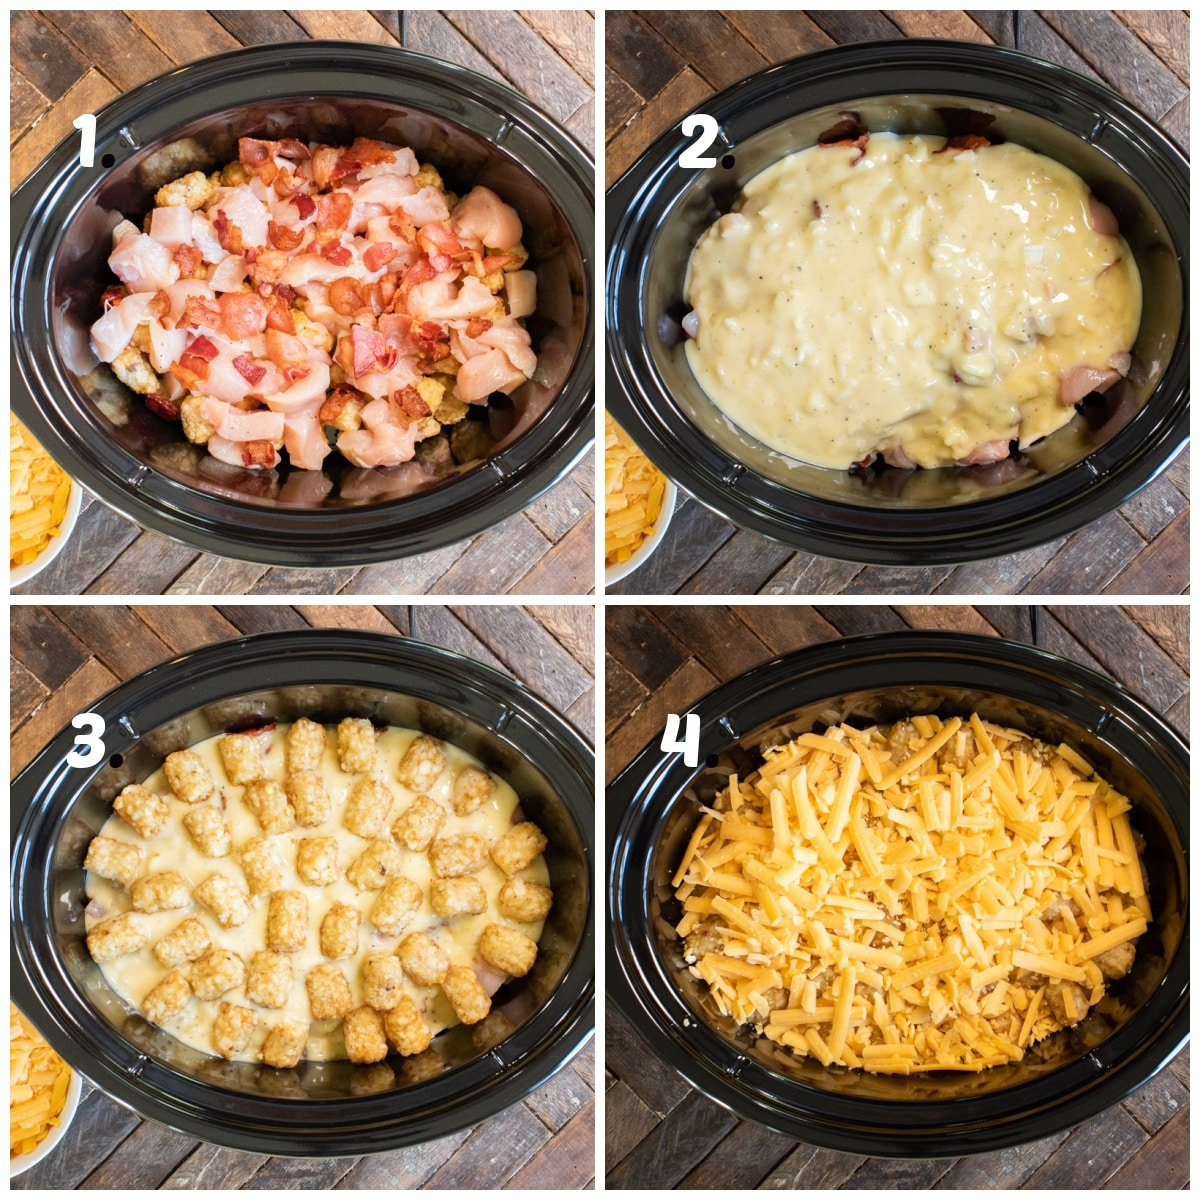 4 image collage on how to assemble tater tot casserole